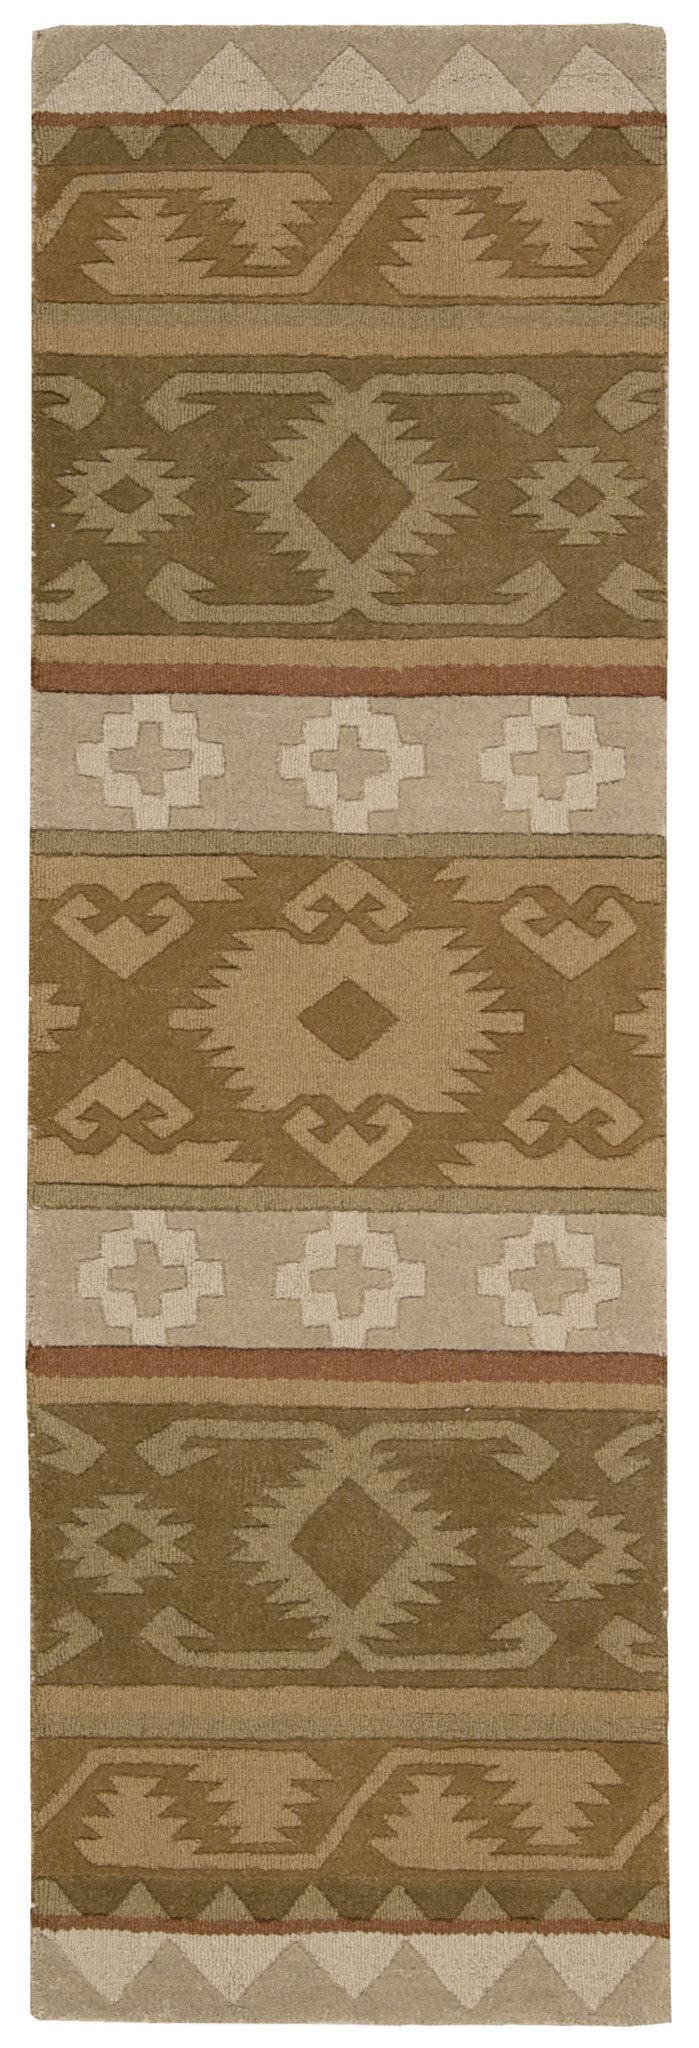 Nourison India House Camel Area Rug IH85 CAM